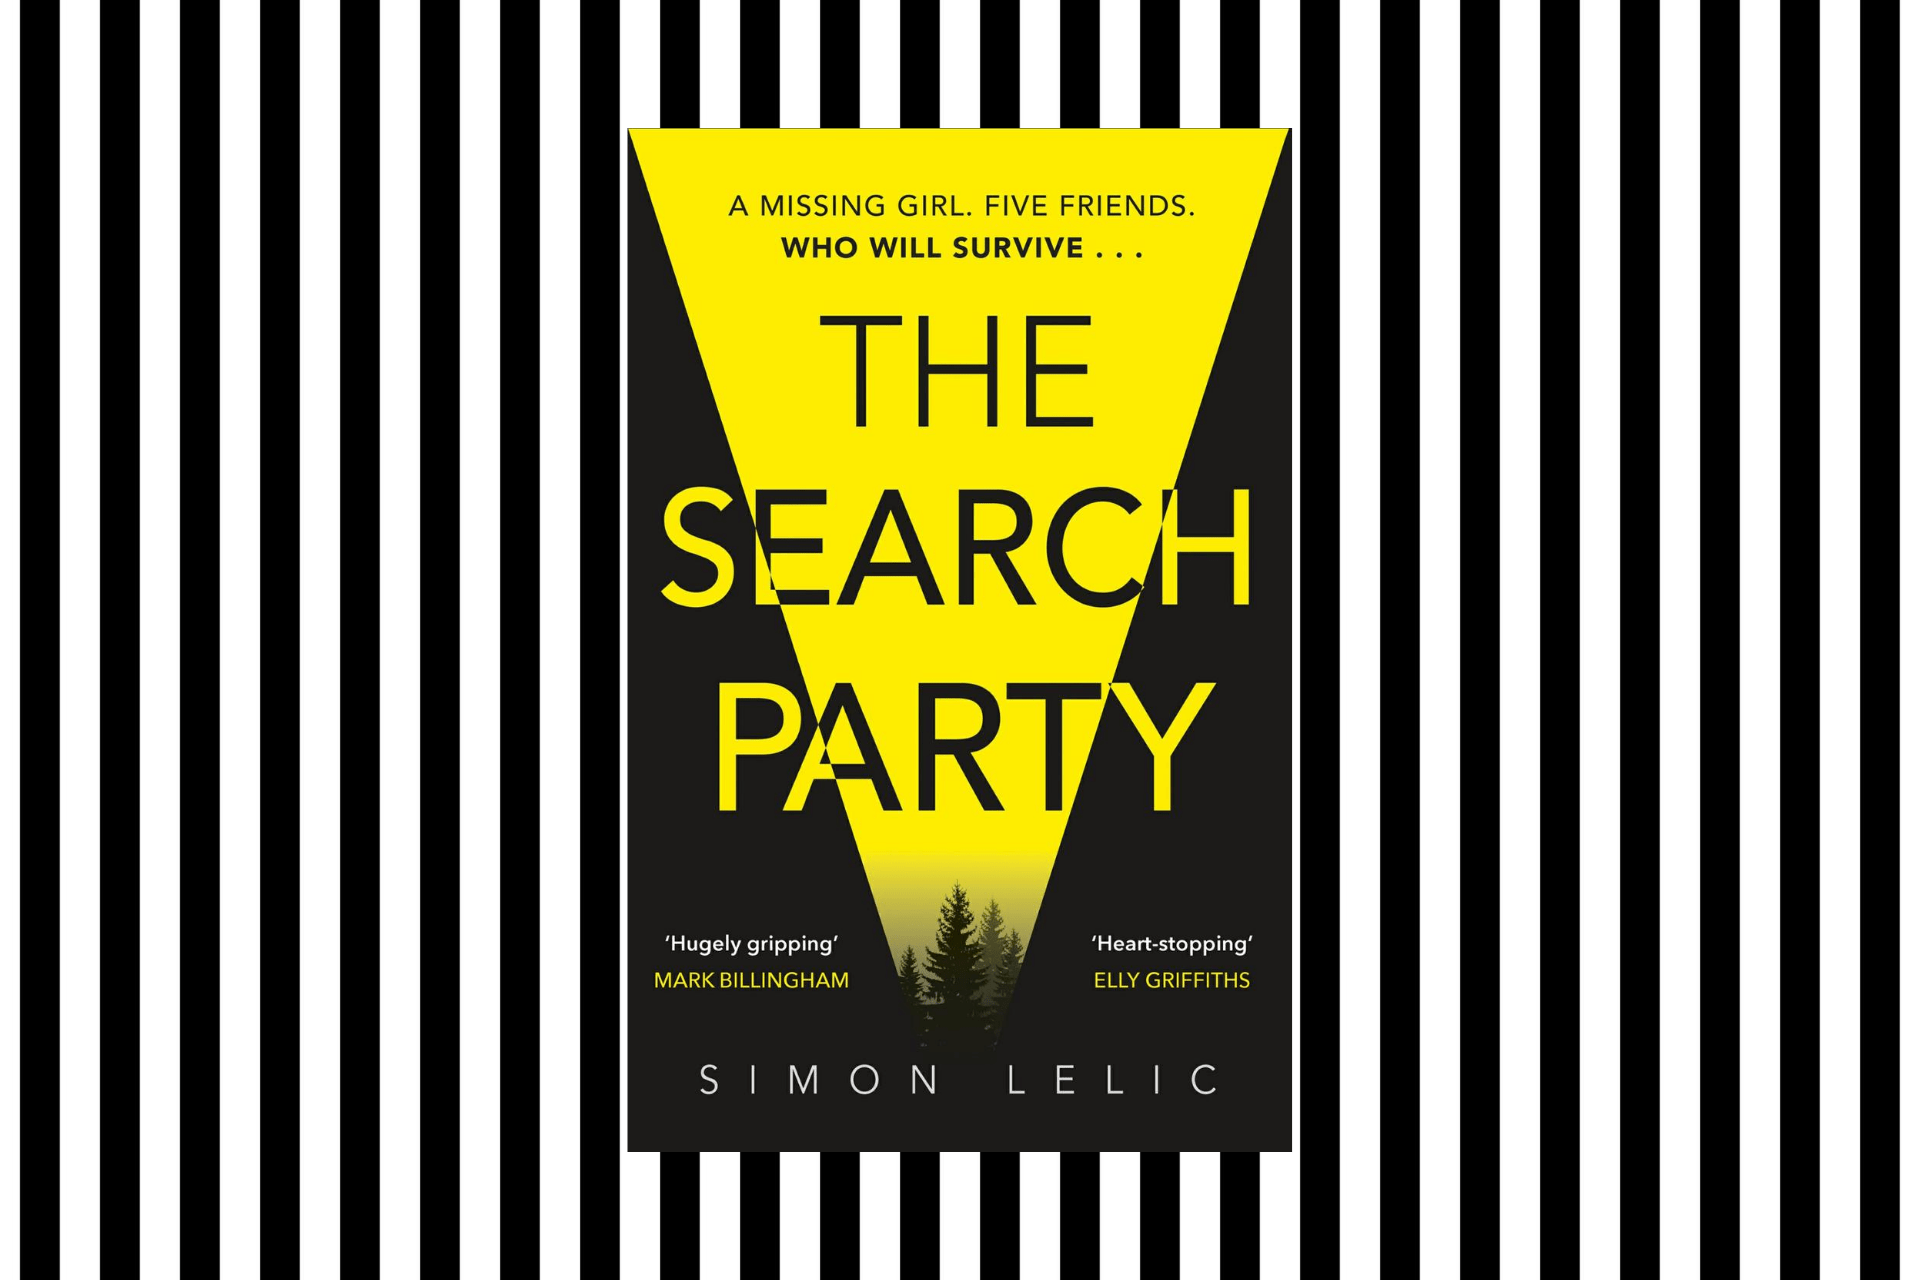 The cover of The Search Party by Simon Lelic